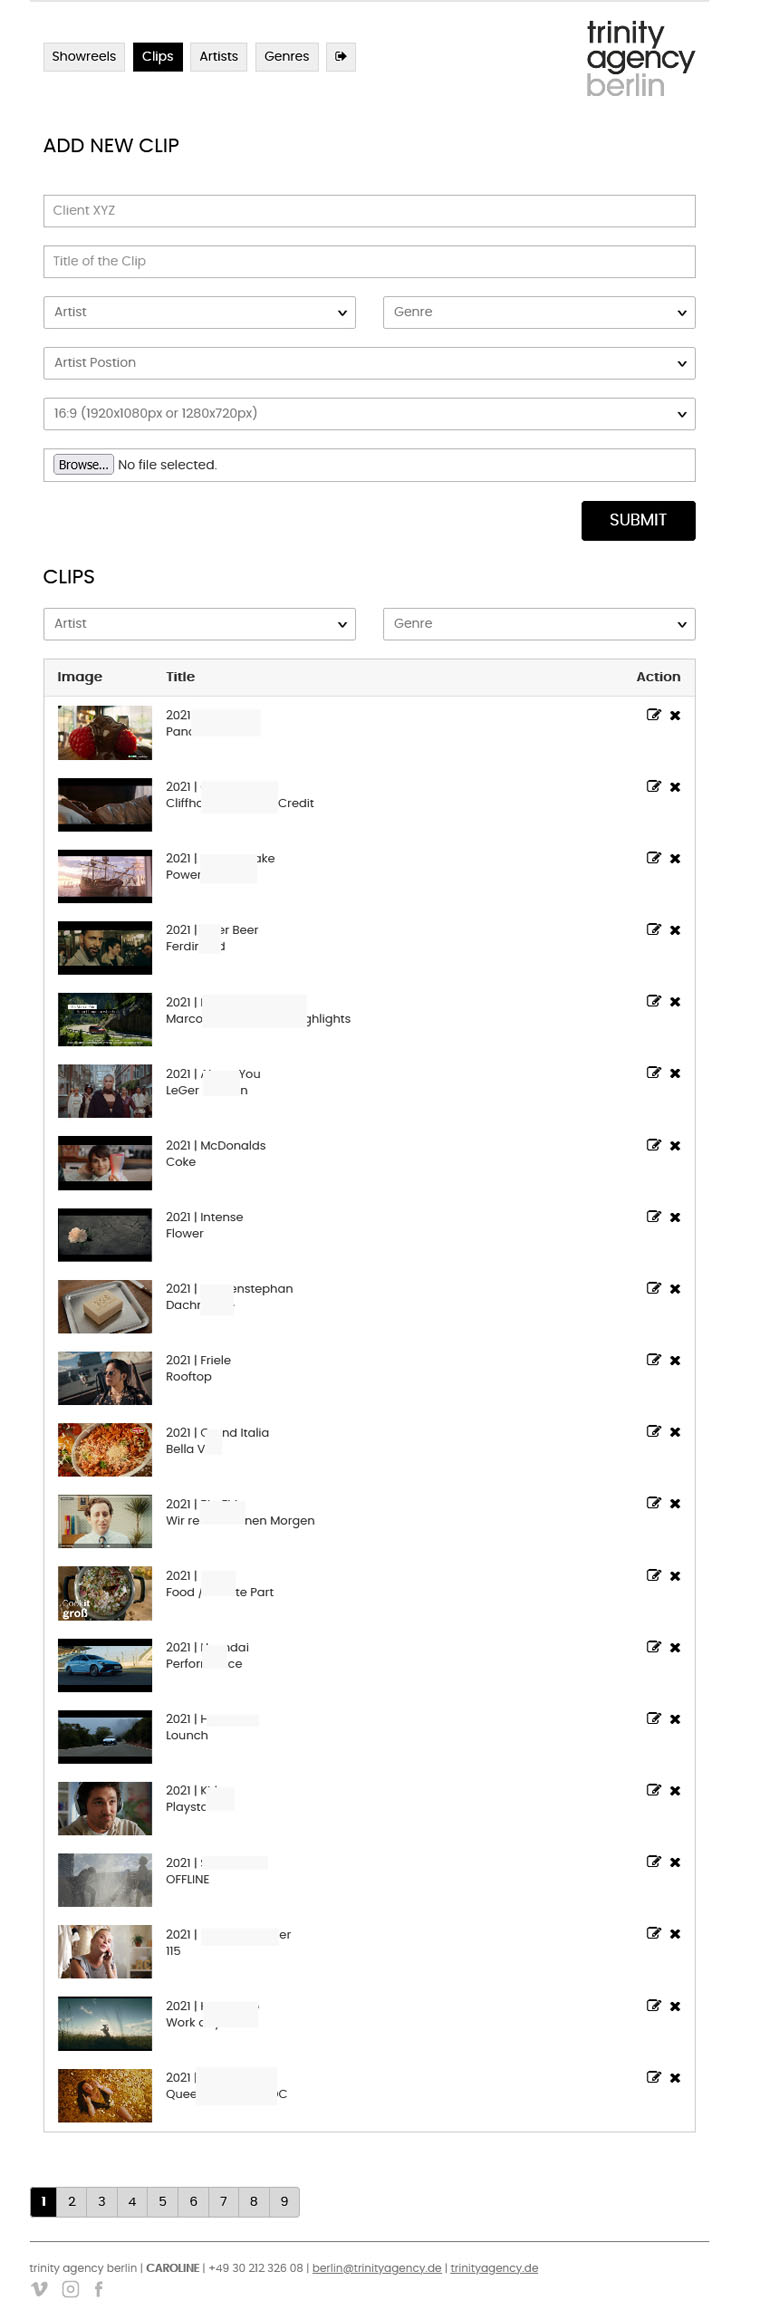 PHP application Showreels project  clips list and add